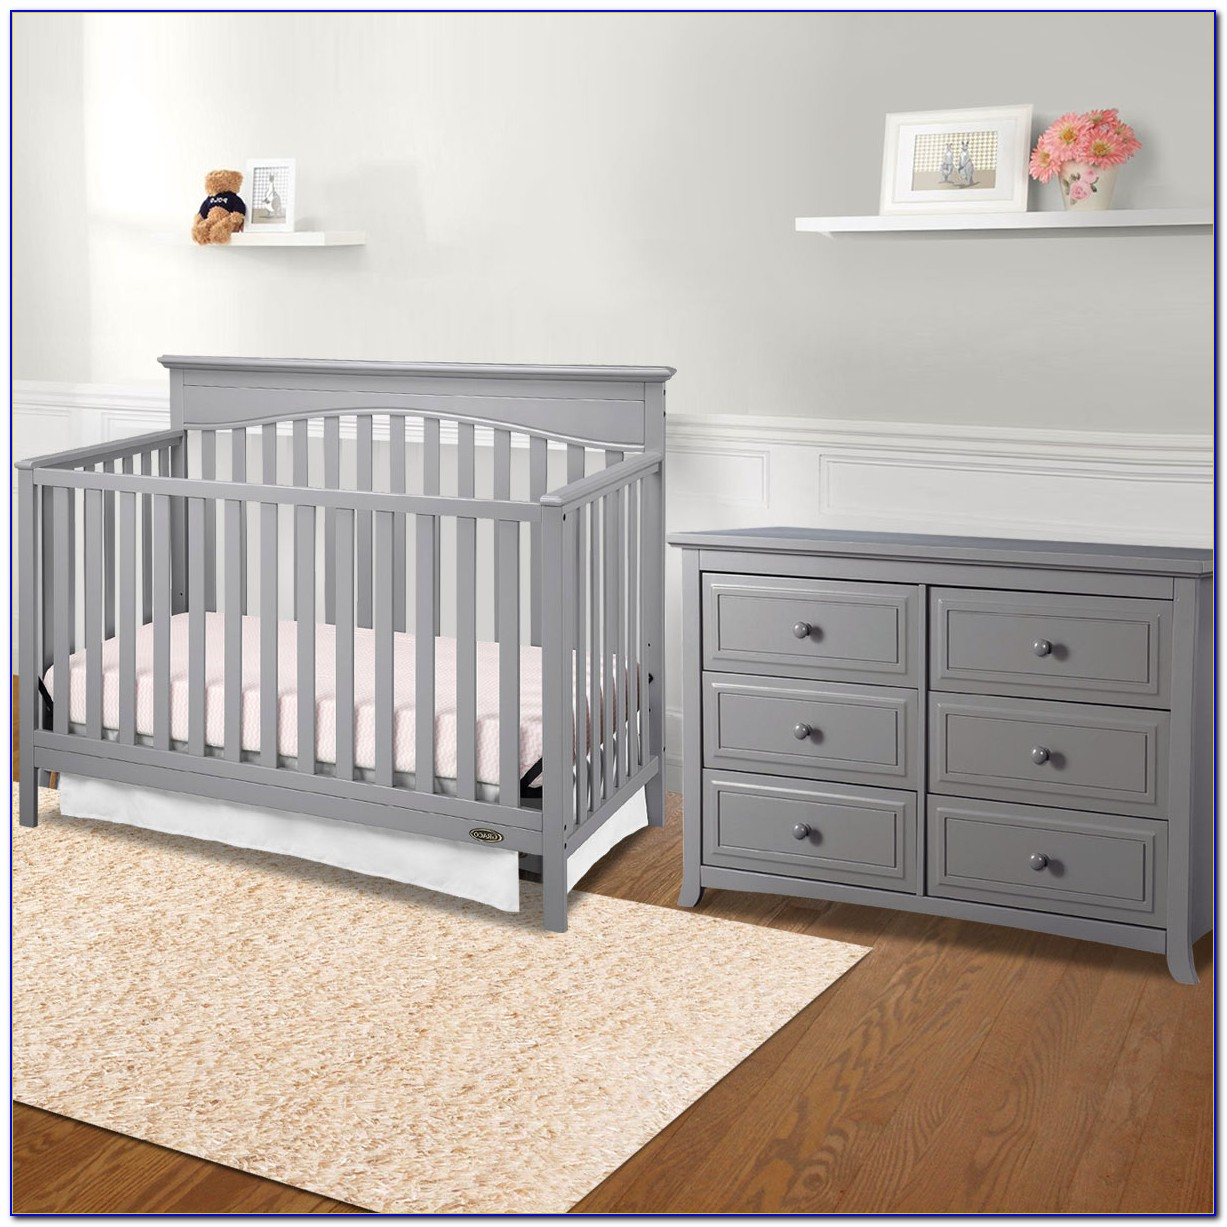 Baby Crib With Matching Dresser